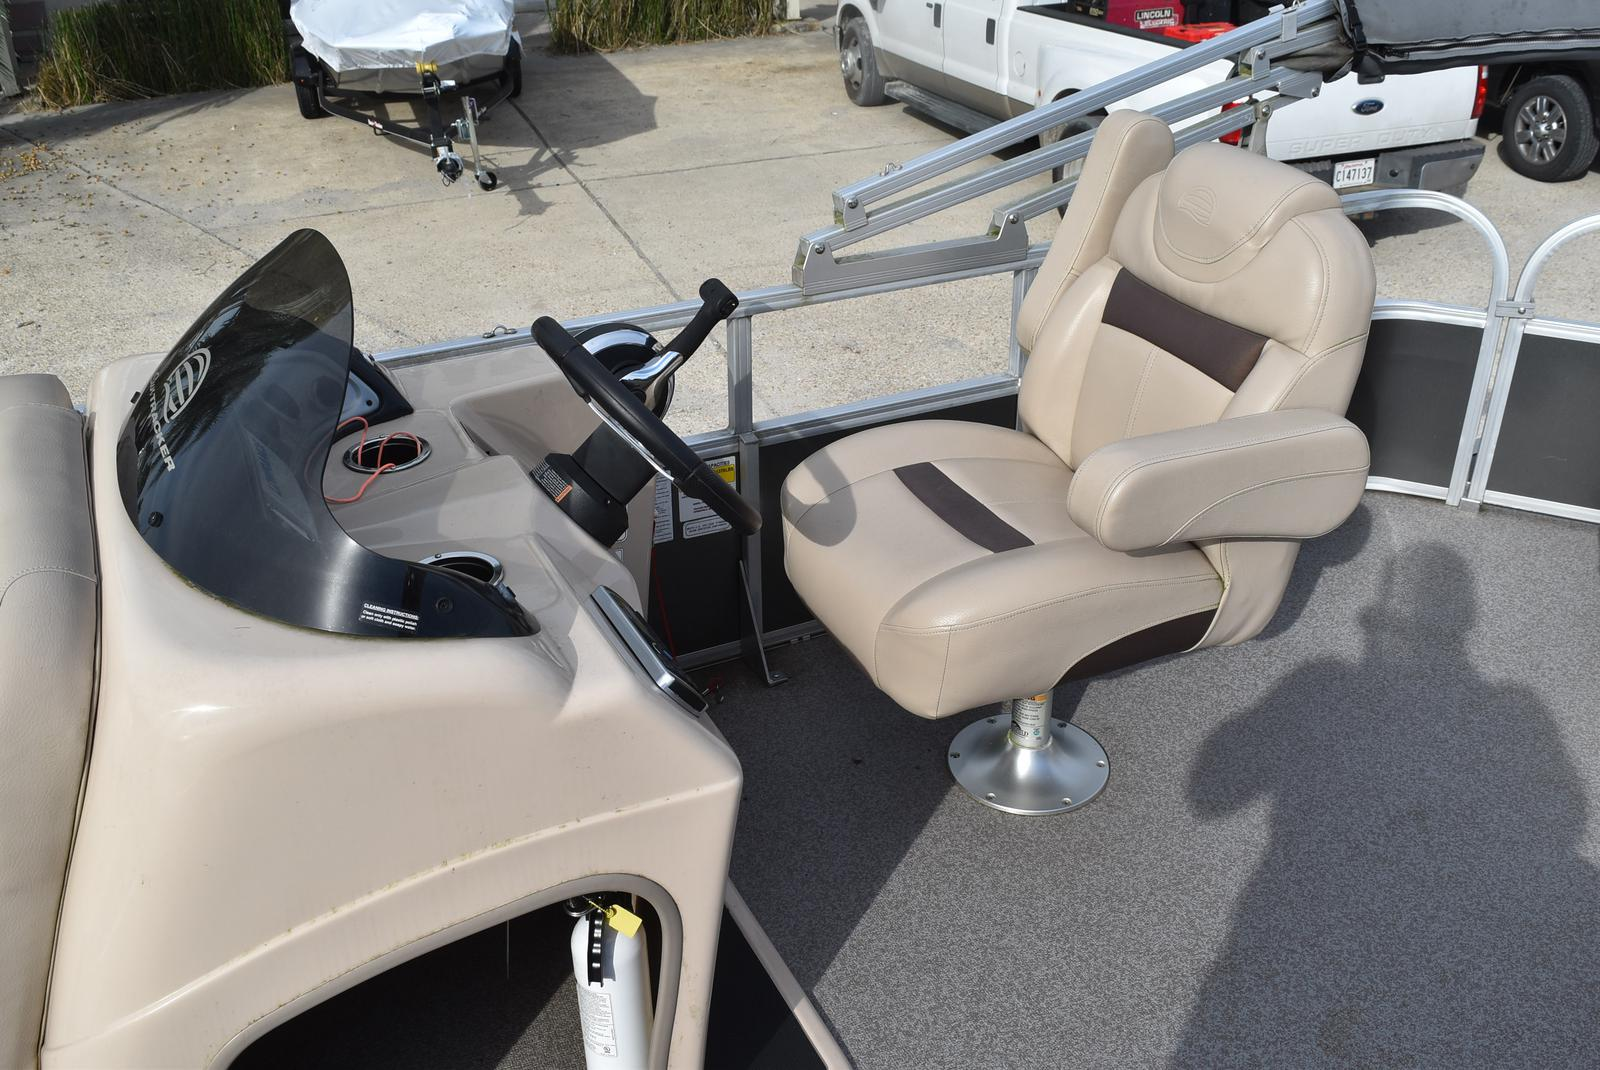 2018 Sun Tracker boat for sale, model of the boat is Party Barge 20 DLX, 90CT & Image # 9 of 14